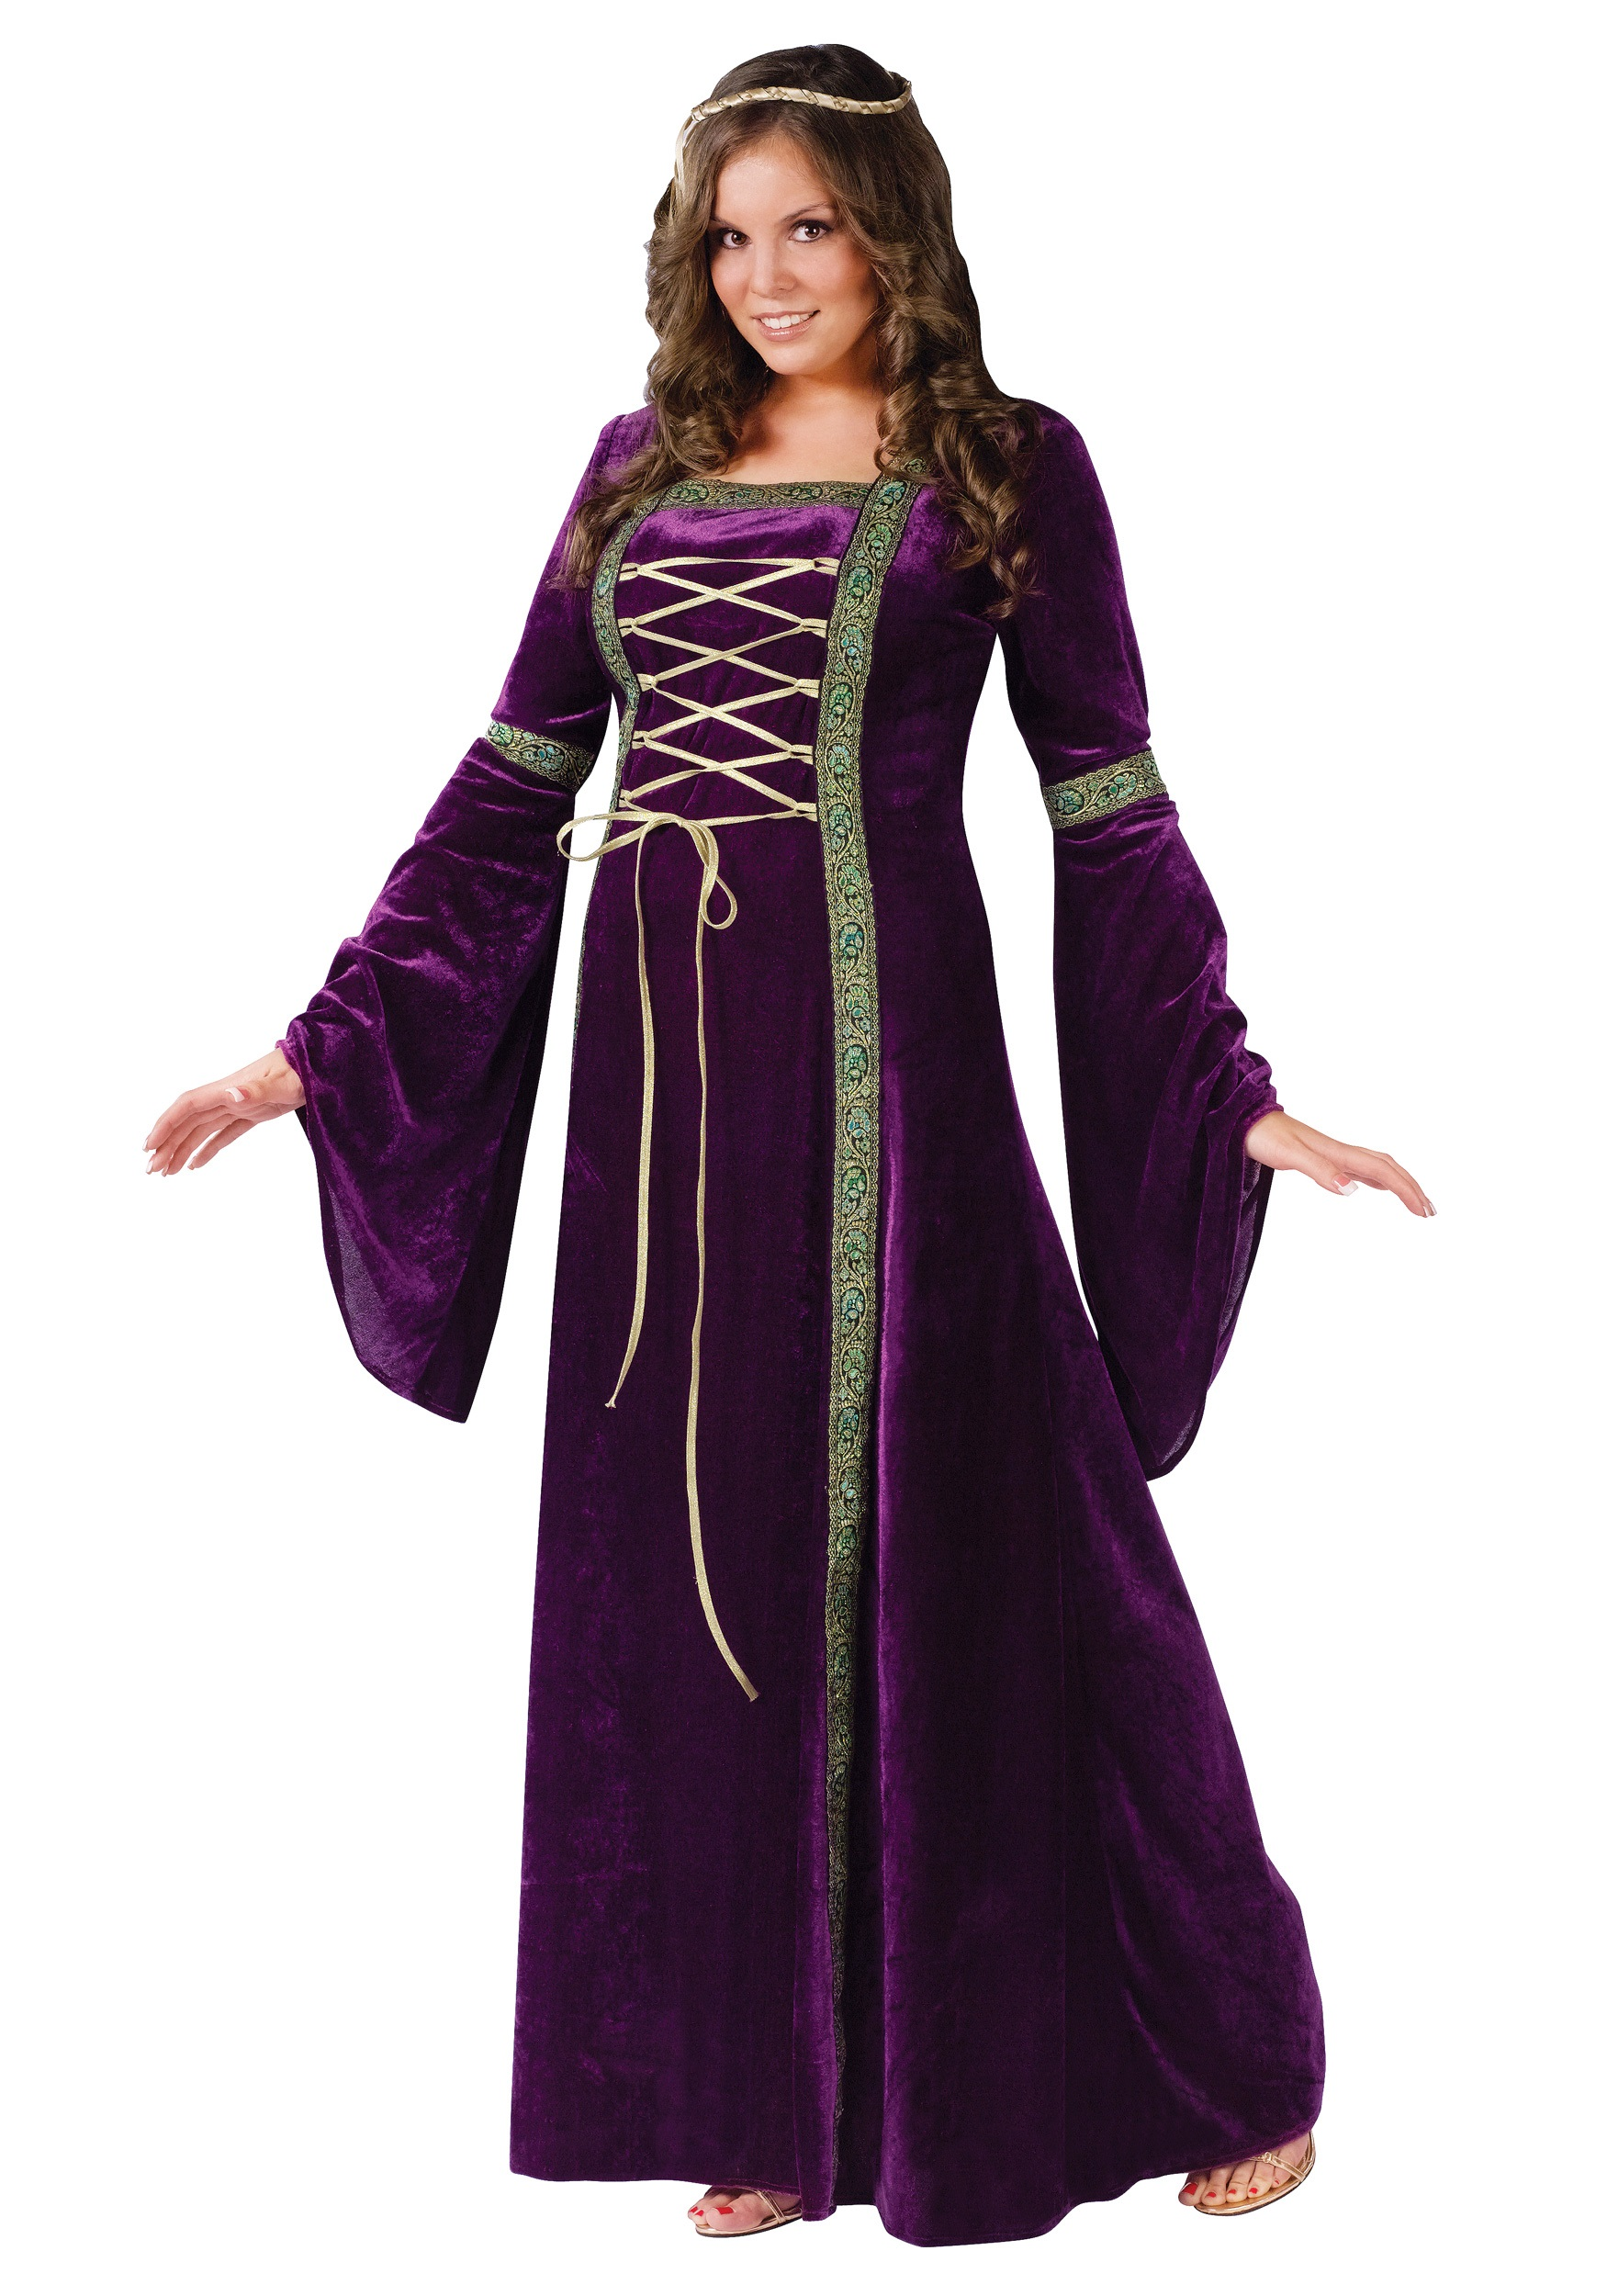 Women's Plus Size Renaissance Lady Costume | Decade Costumes